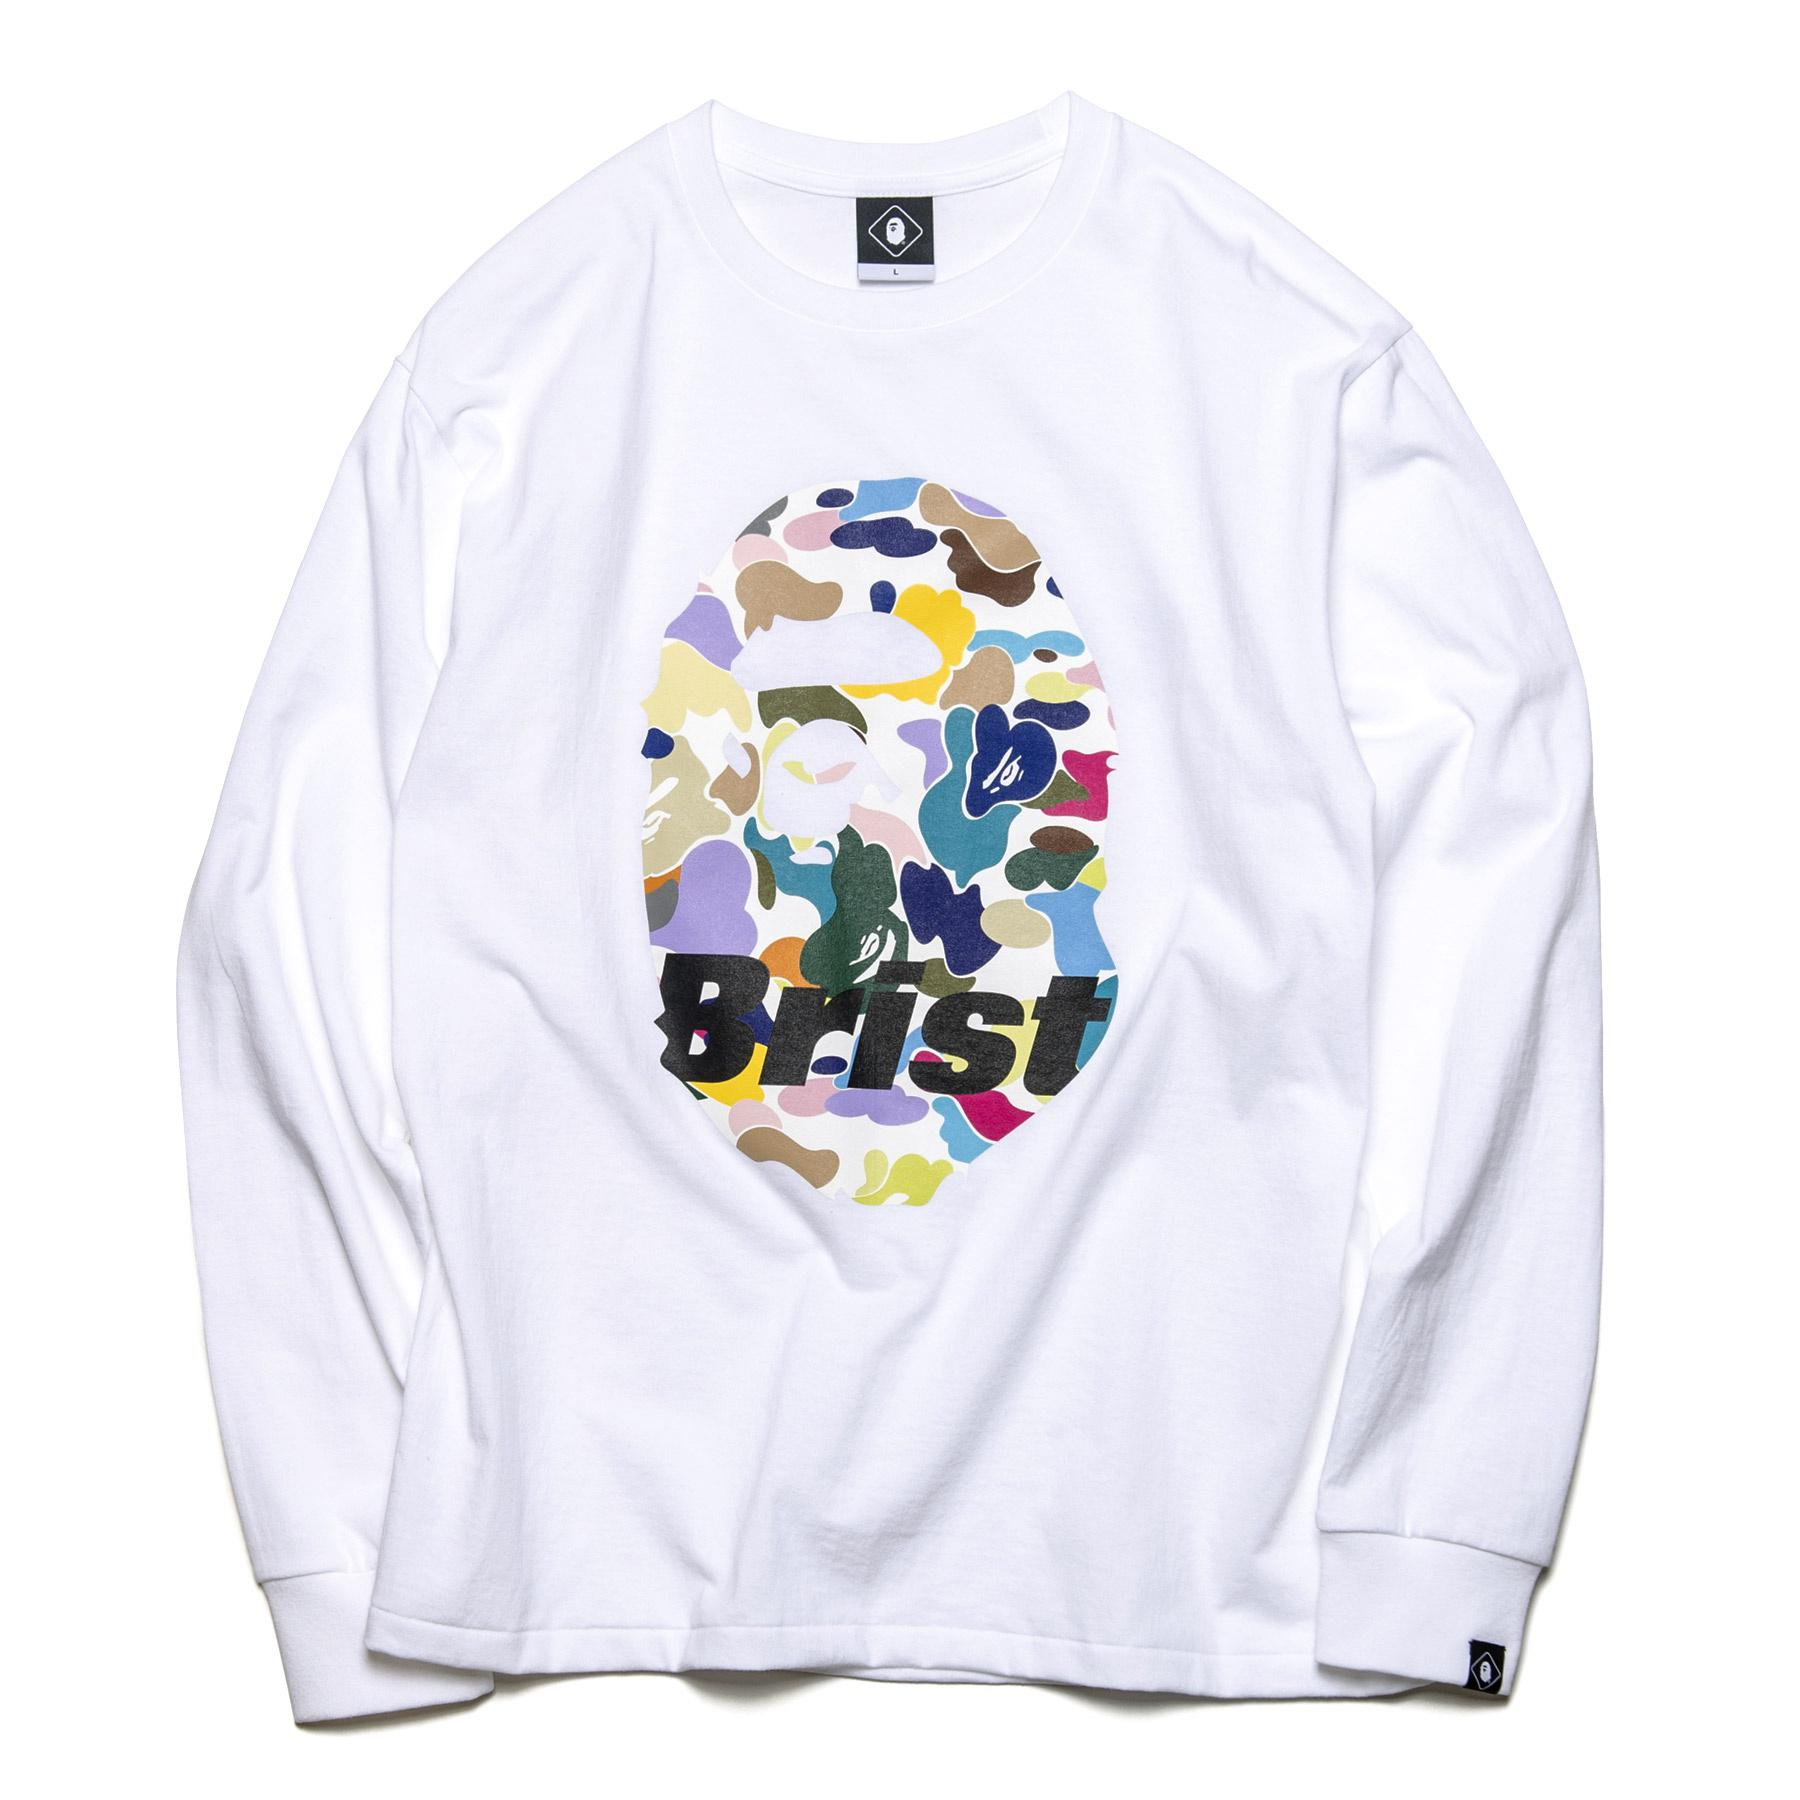 9bb296c0 Lyst - A Bathing Ape X F.c.r.b. Ape Head L/s Tee White in White for Men